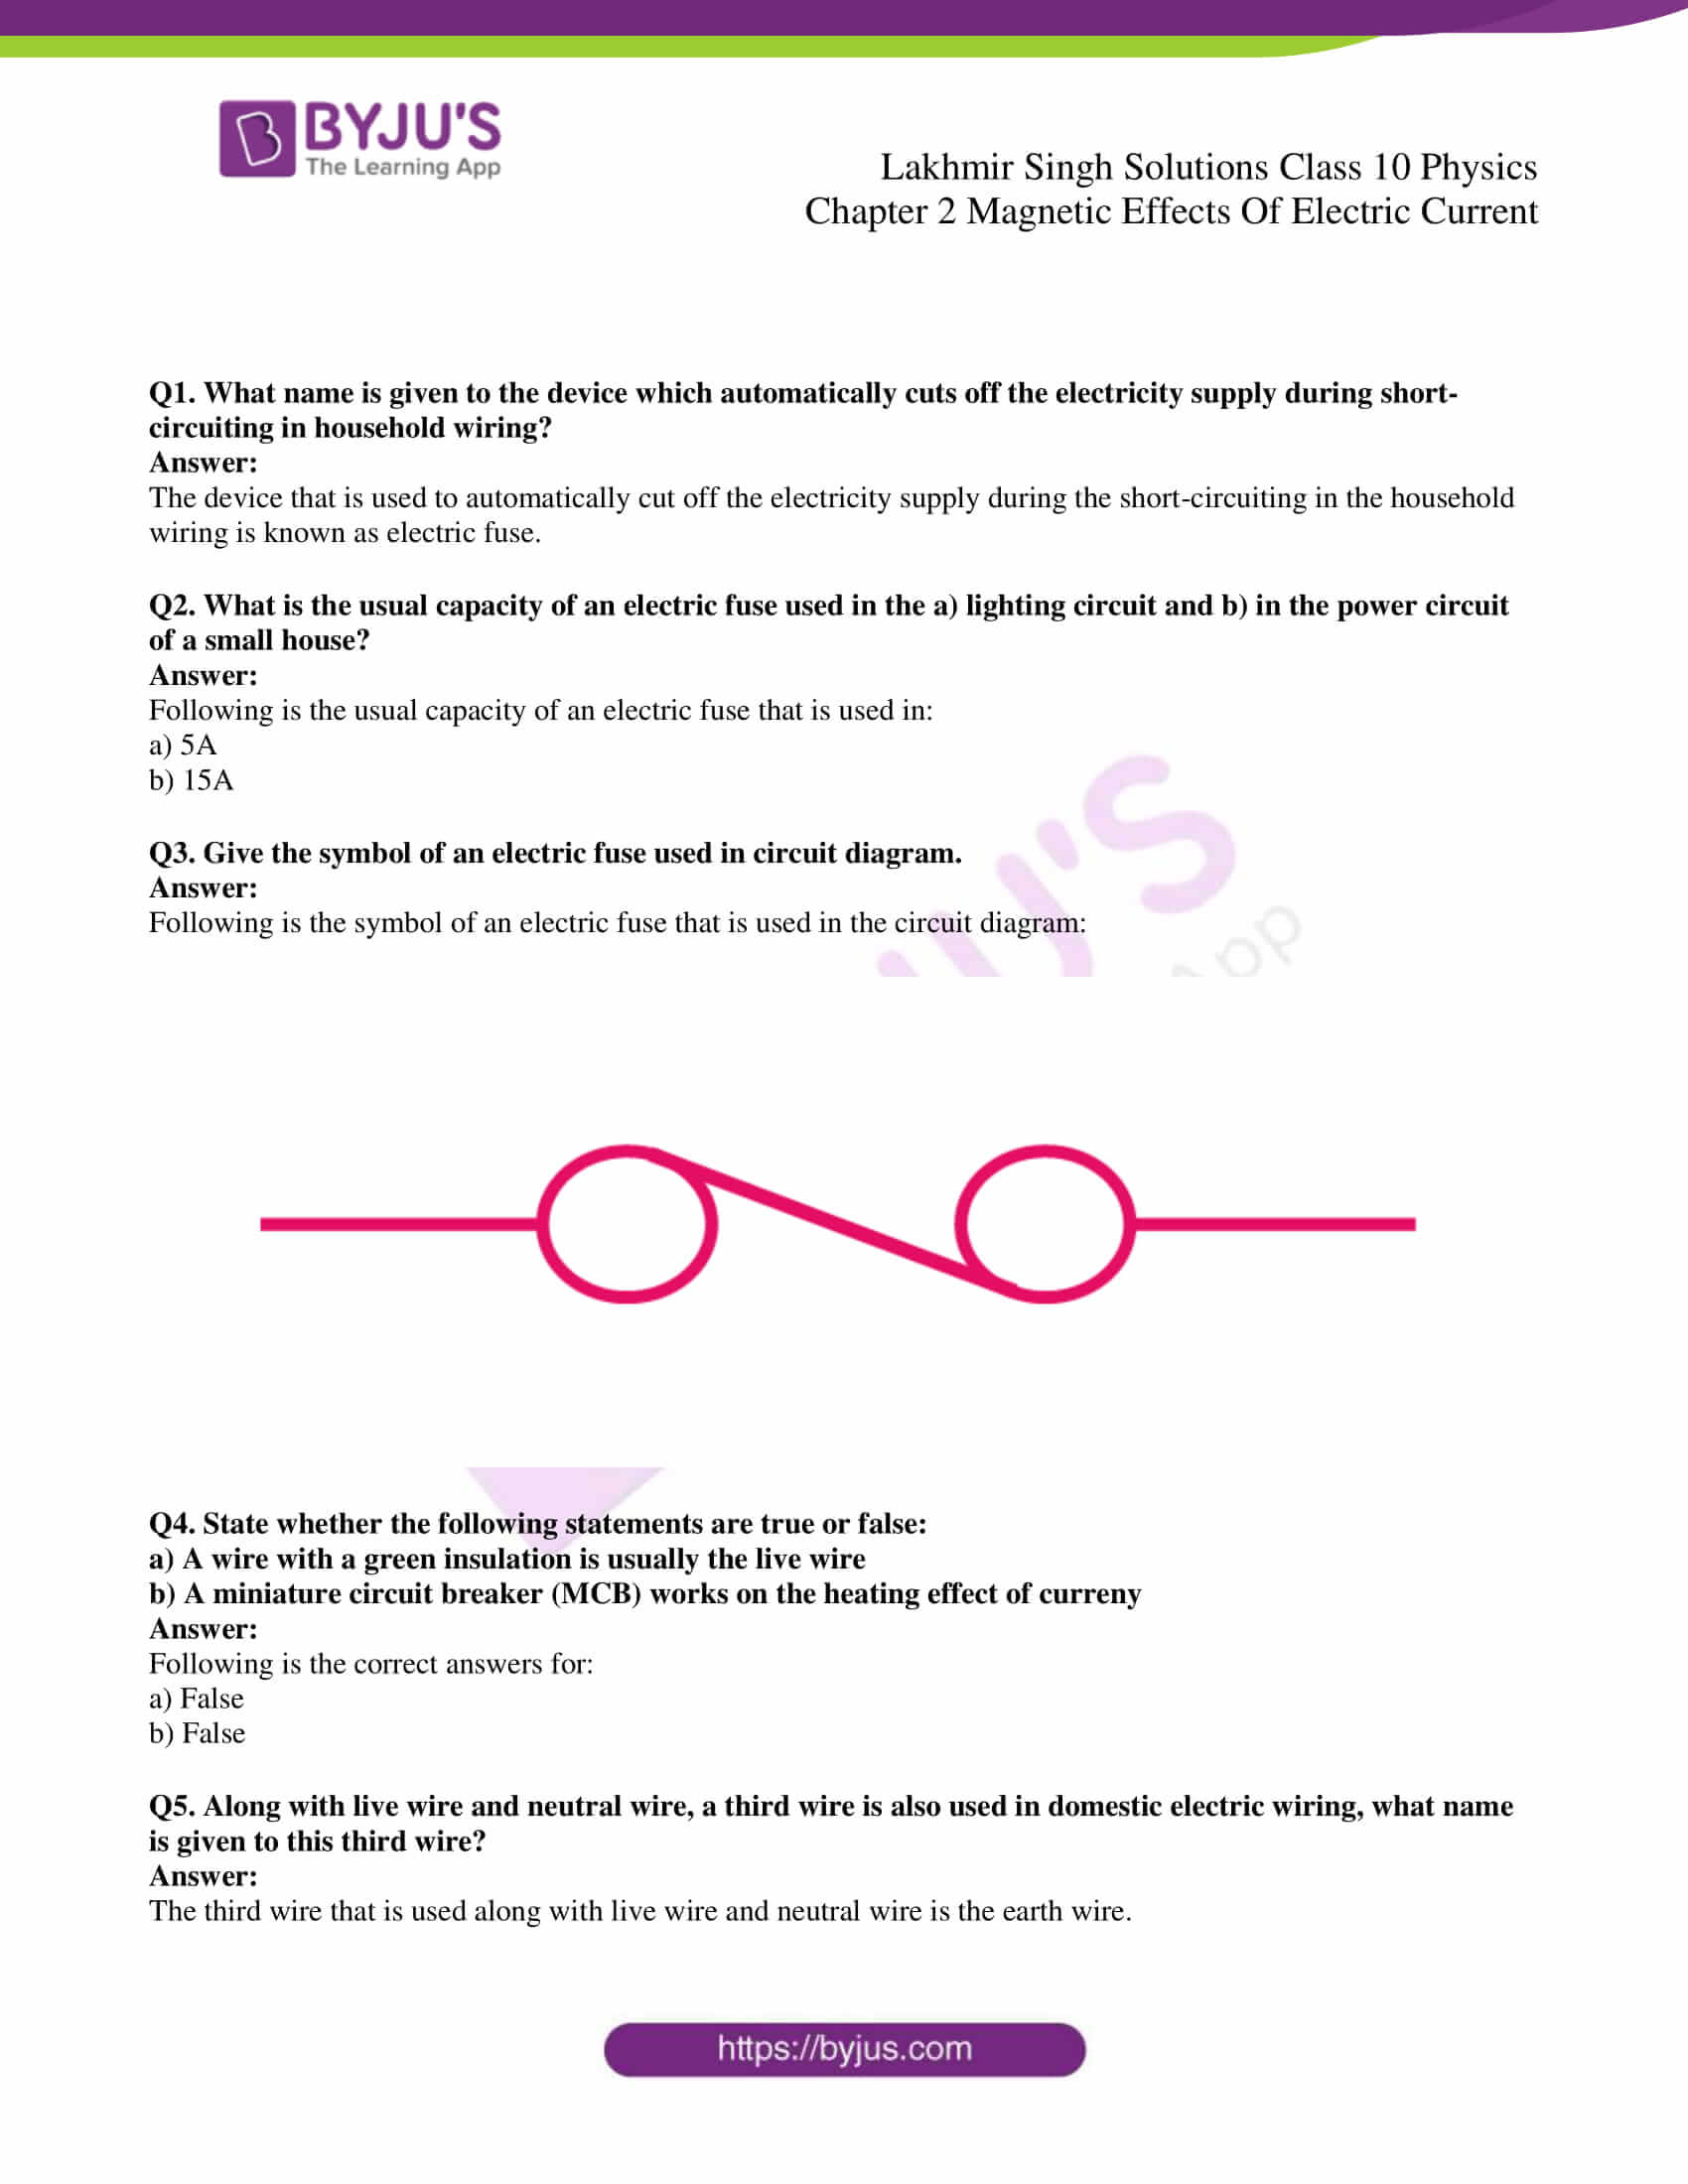 lakhmir singh sol class 10 physics chapter 2 37